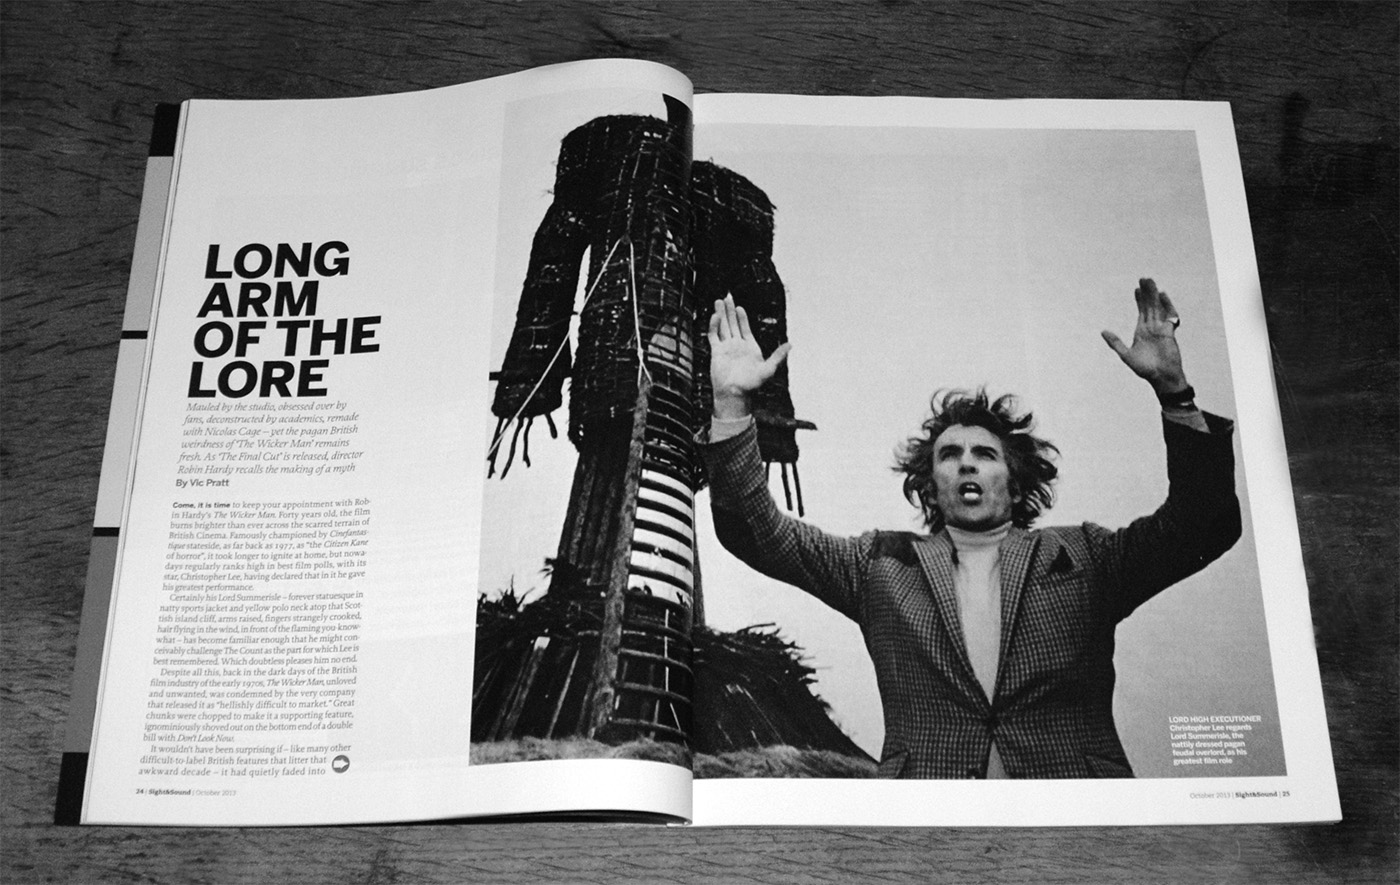 Sight & Sound-2013-The Wickerman-2010-The Films Of Old Weird Britain-2